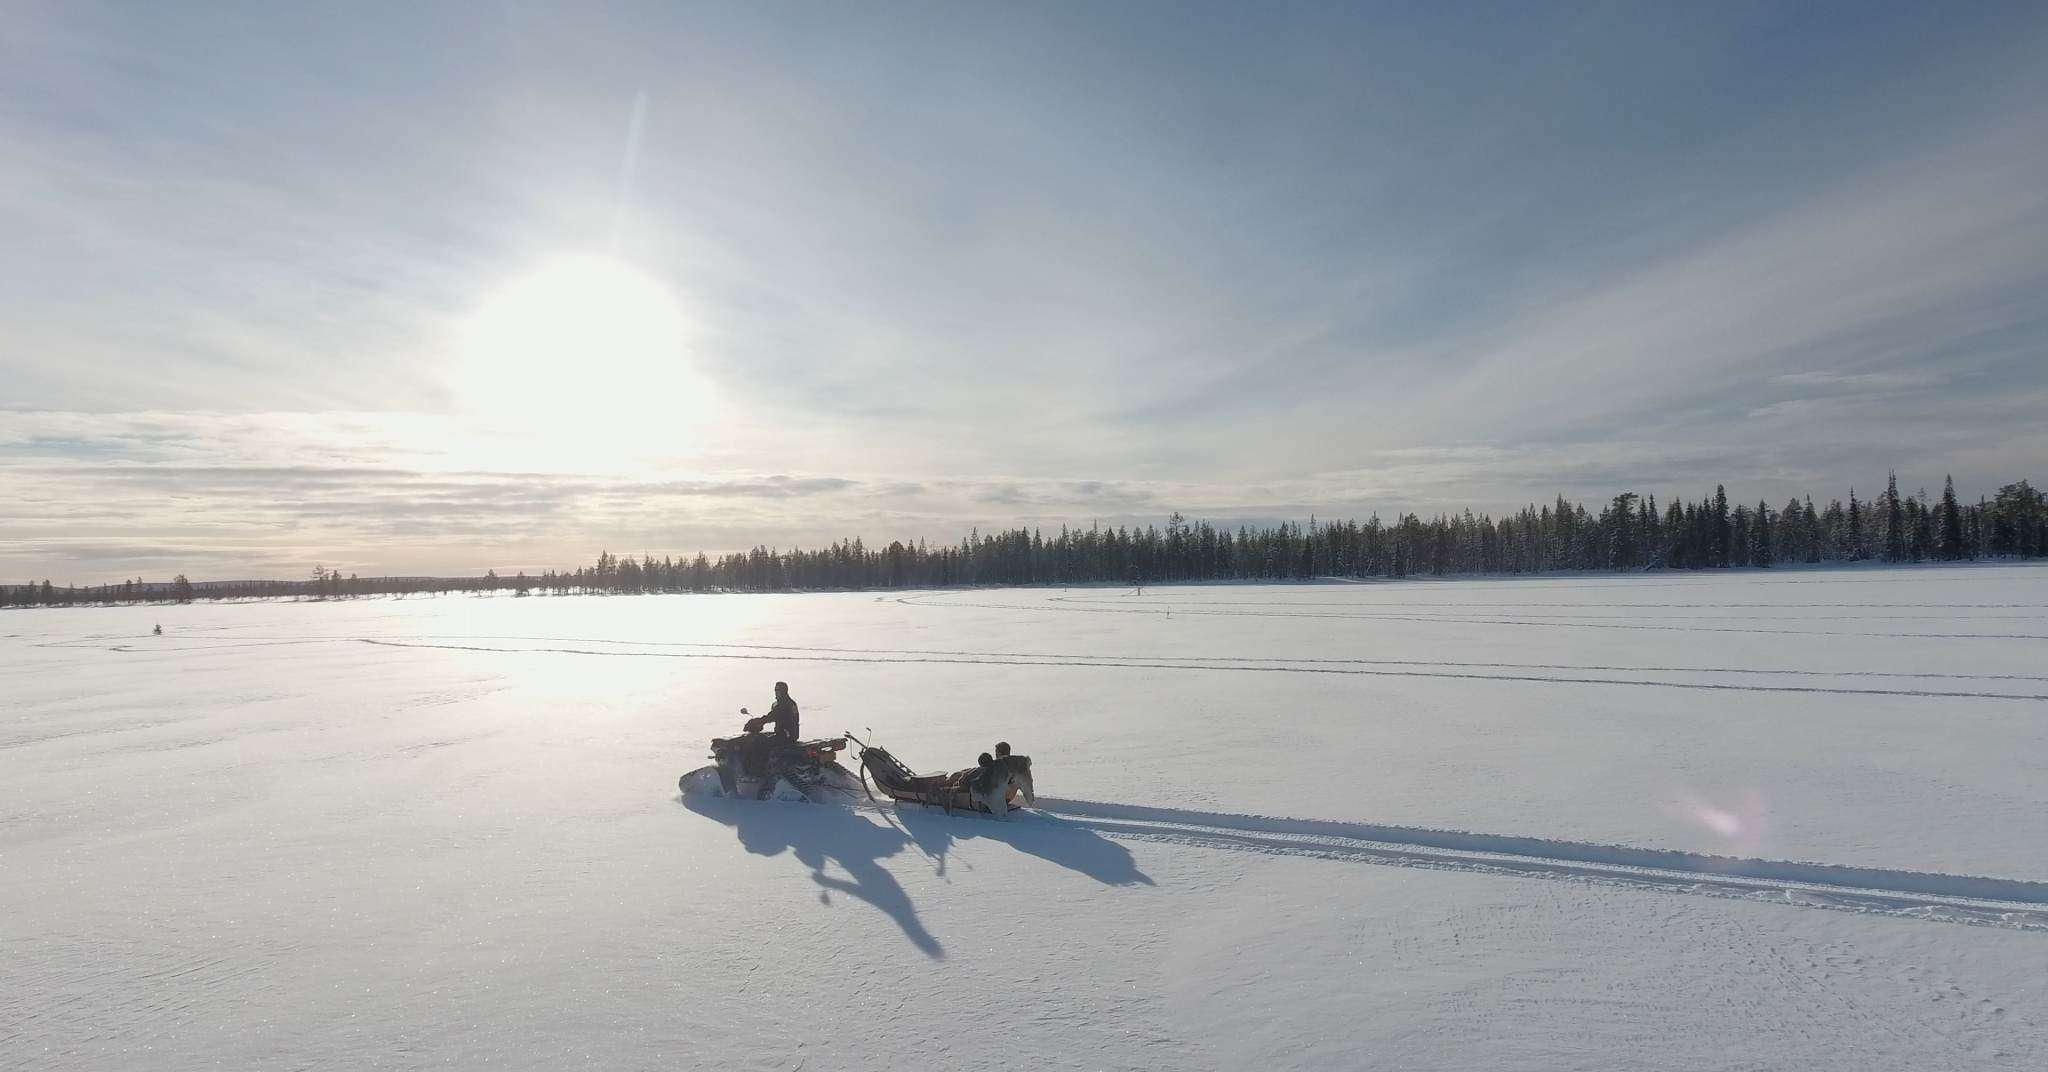 Atv Sledge ride Lapland Lodge